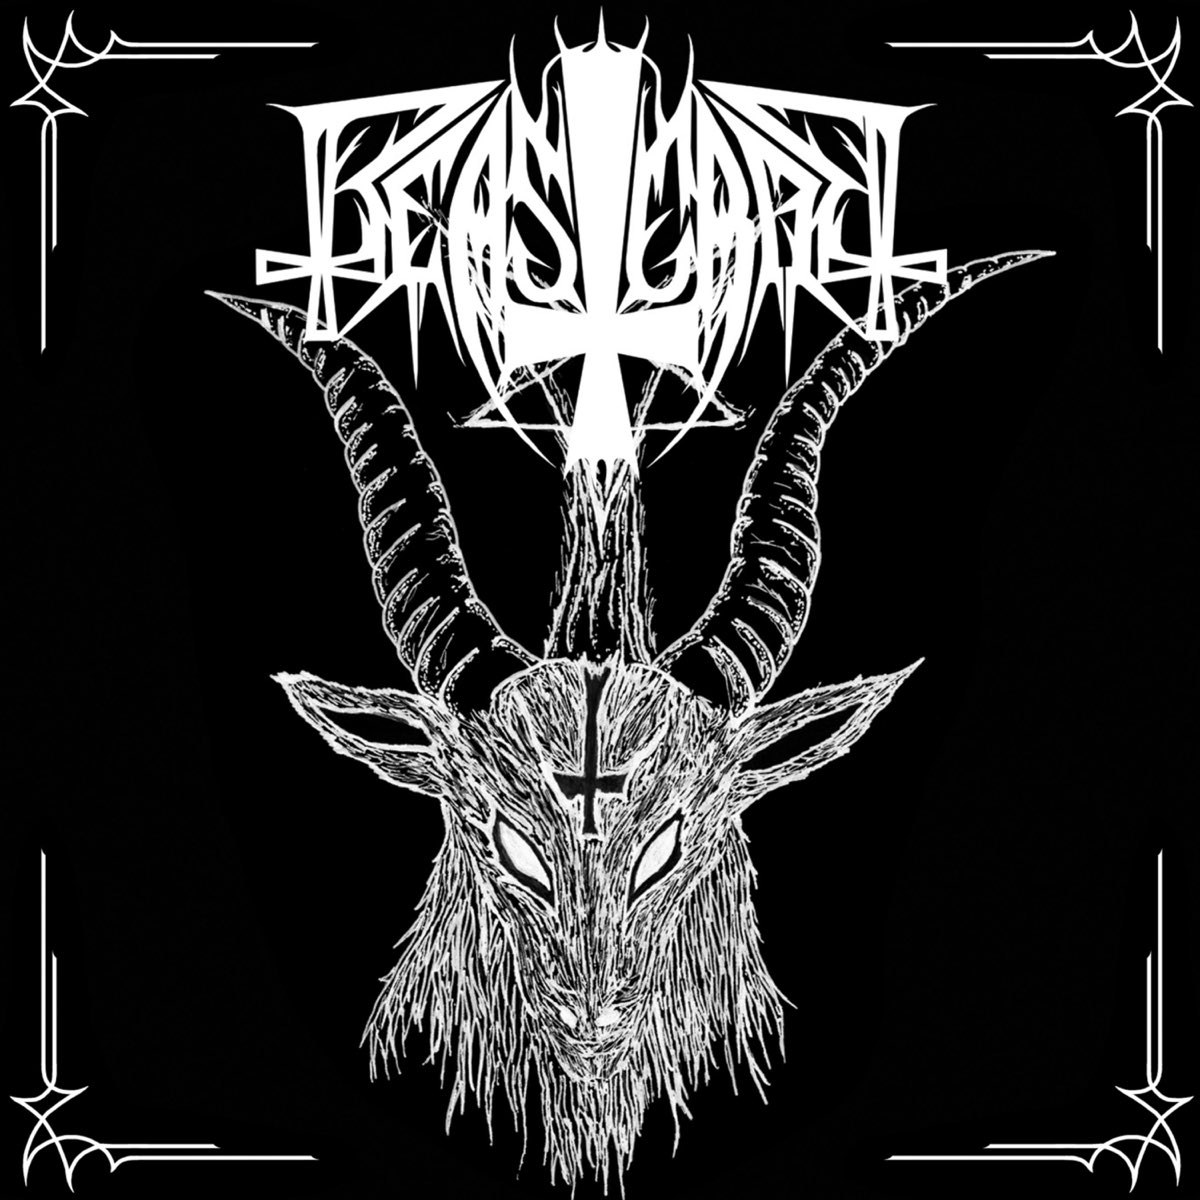 Review for Beastcraft - Sacrilegious Epitaph of the Deathspawned Legacy